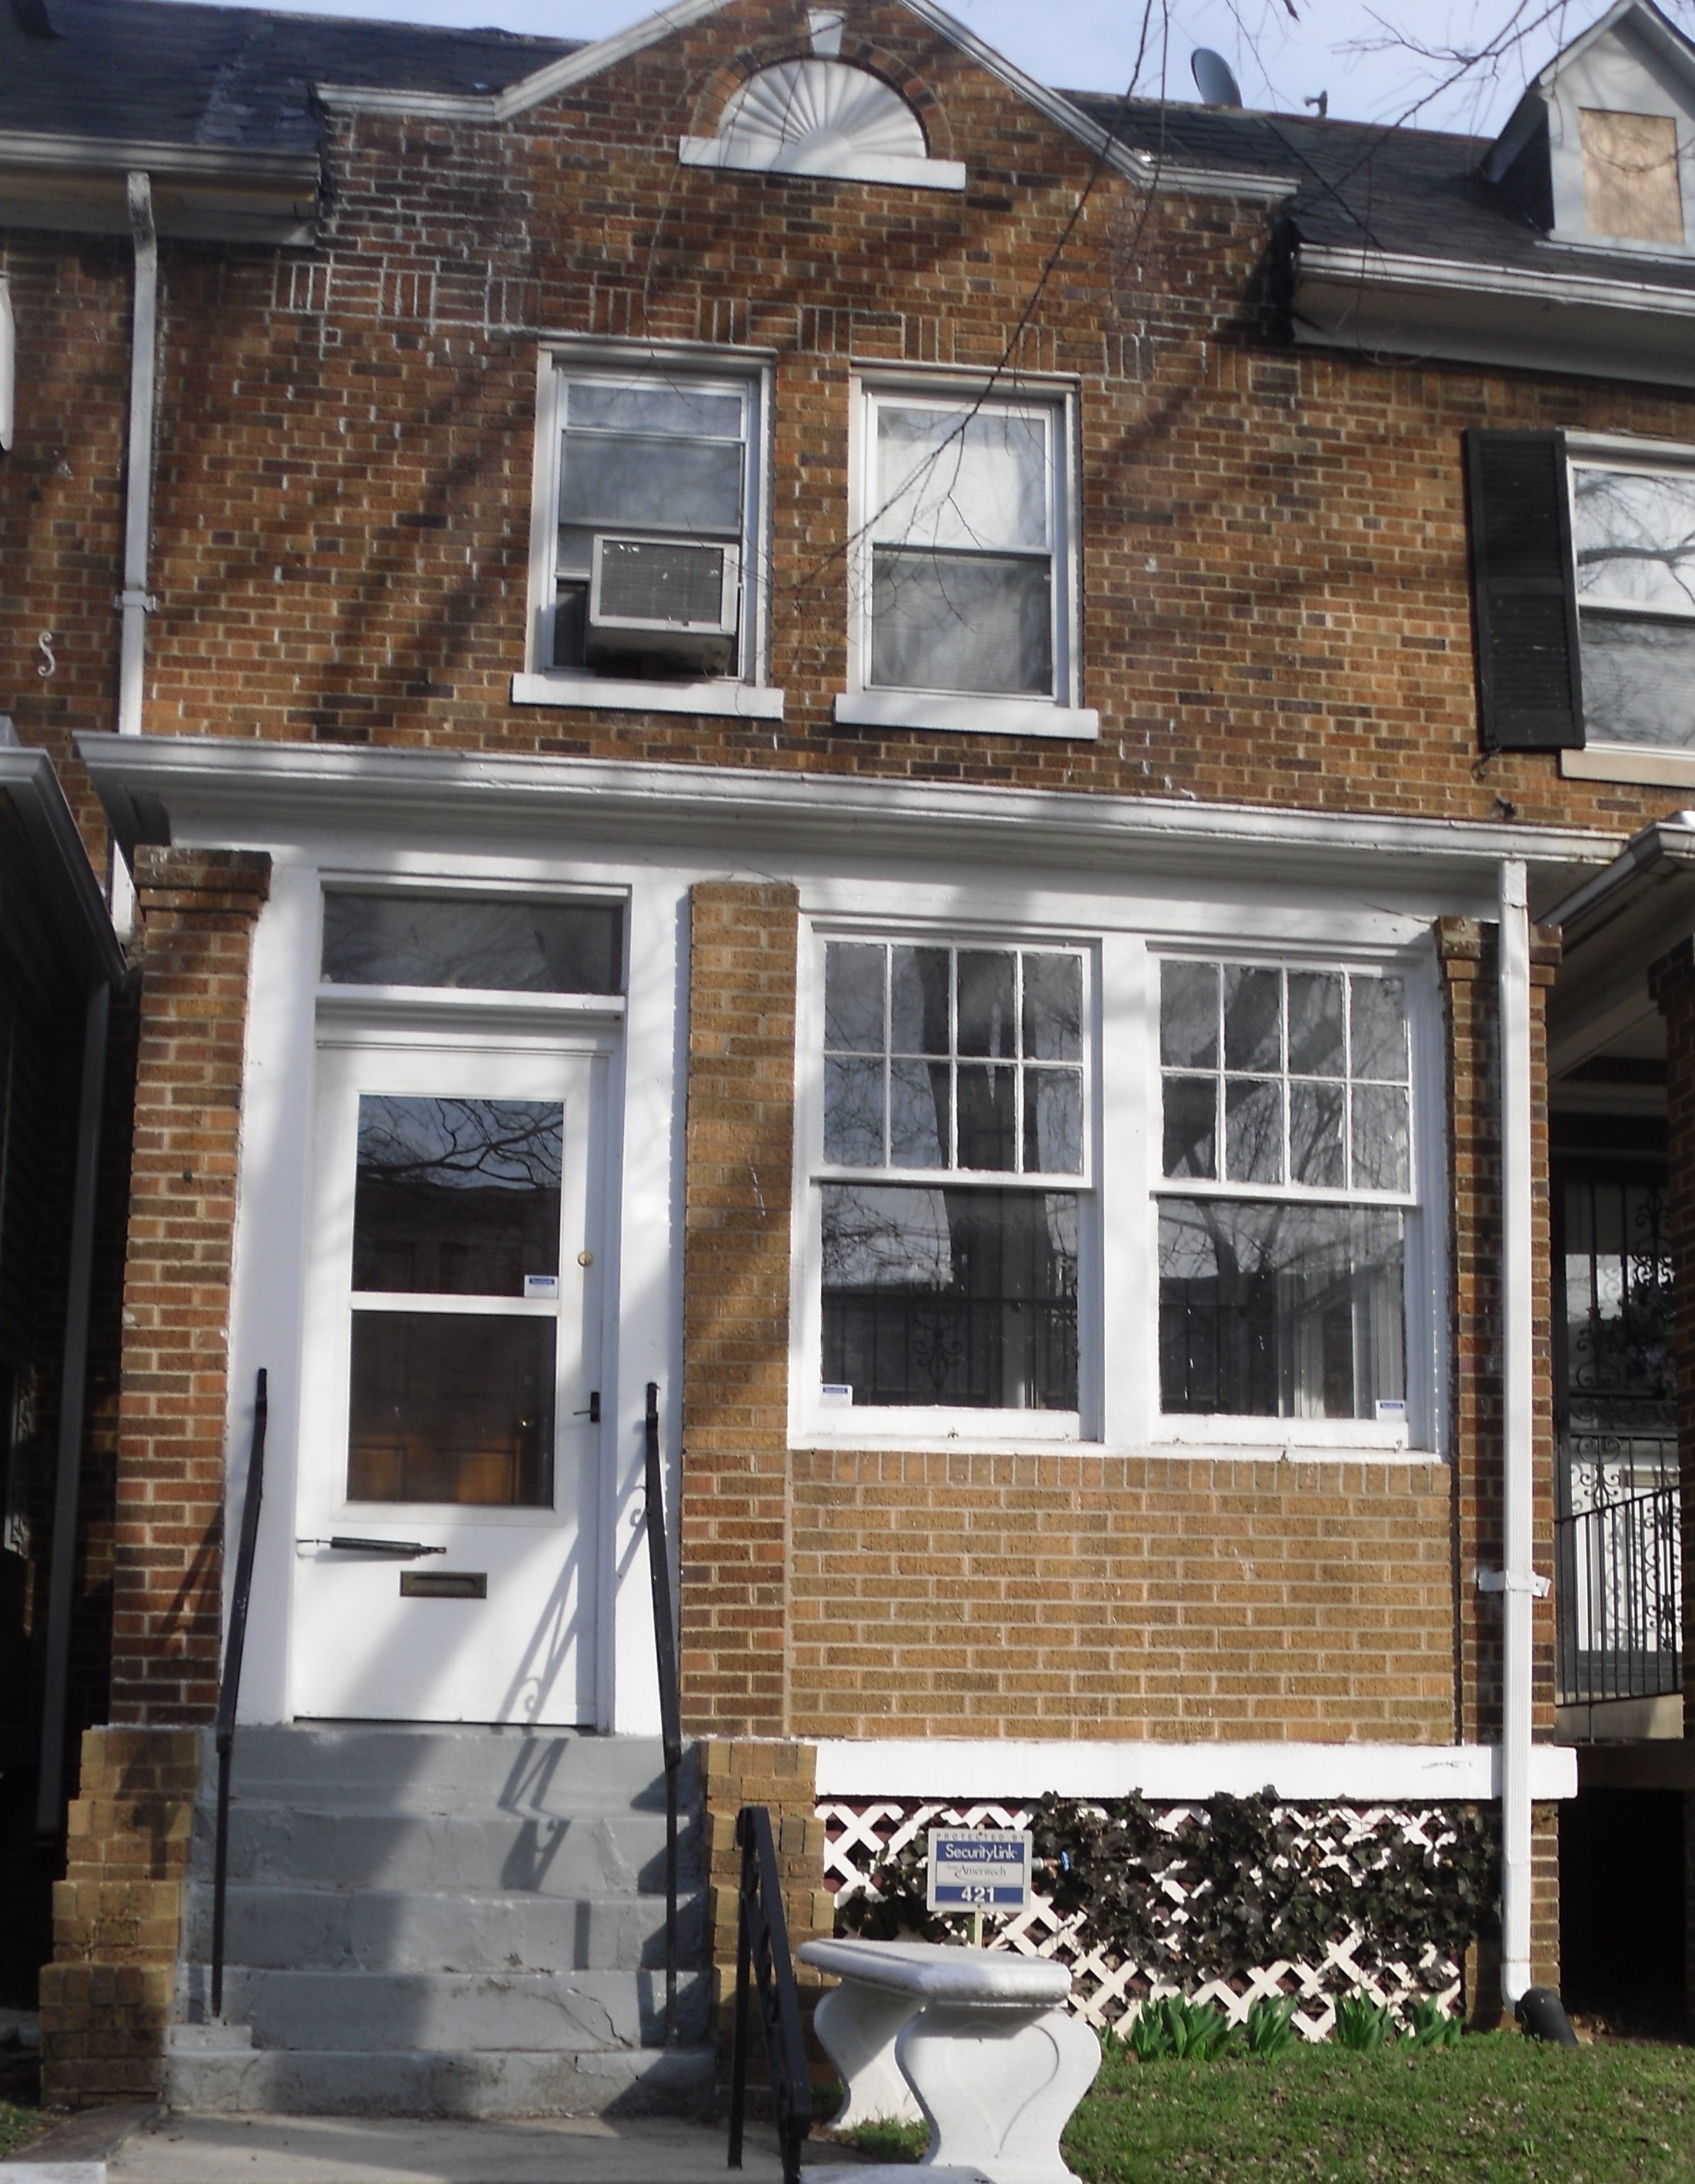 E St NE 23rd Pl NE Washington DC 20002 2 Bedroom House For Rent For